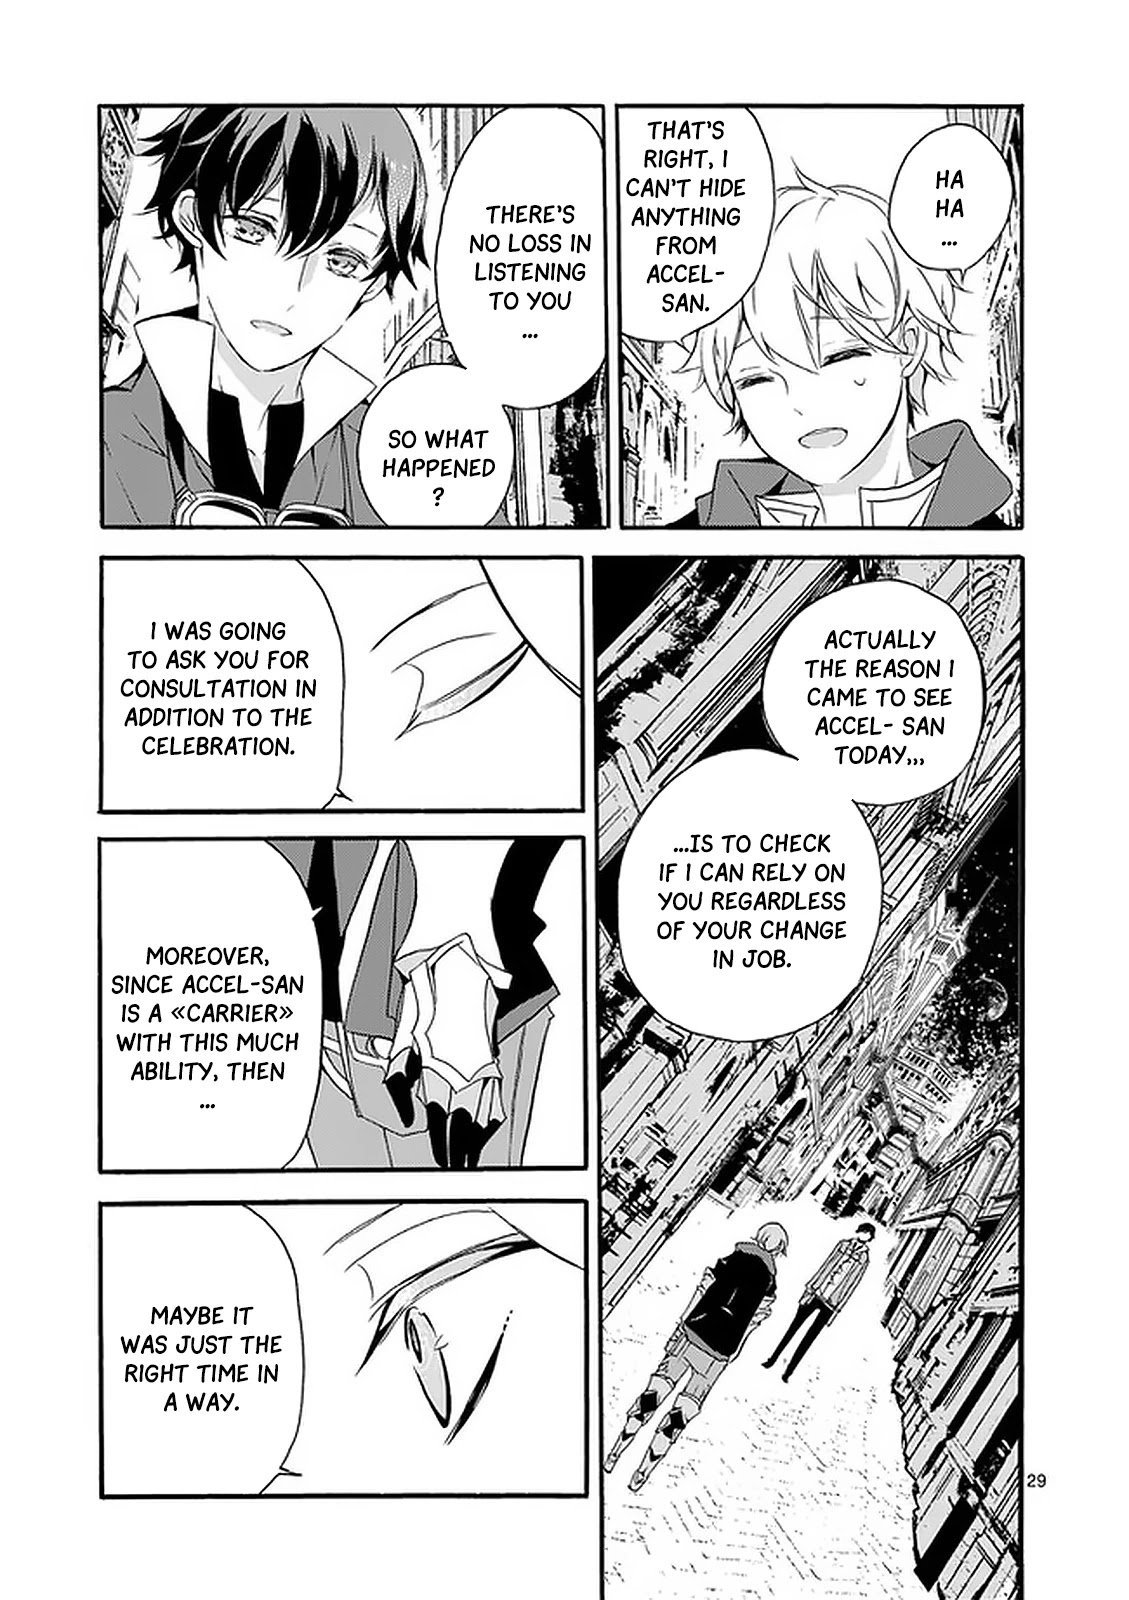 Manga From The Strongest Job of Dragon Knight, To The Beginner Job Carrier, Somehow, I Am Dependent On The Heroes - Chapter 2 Page 30